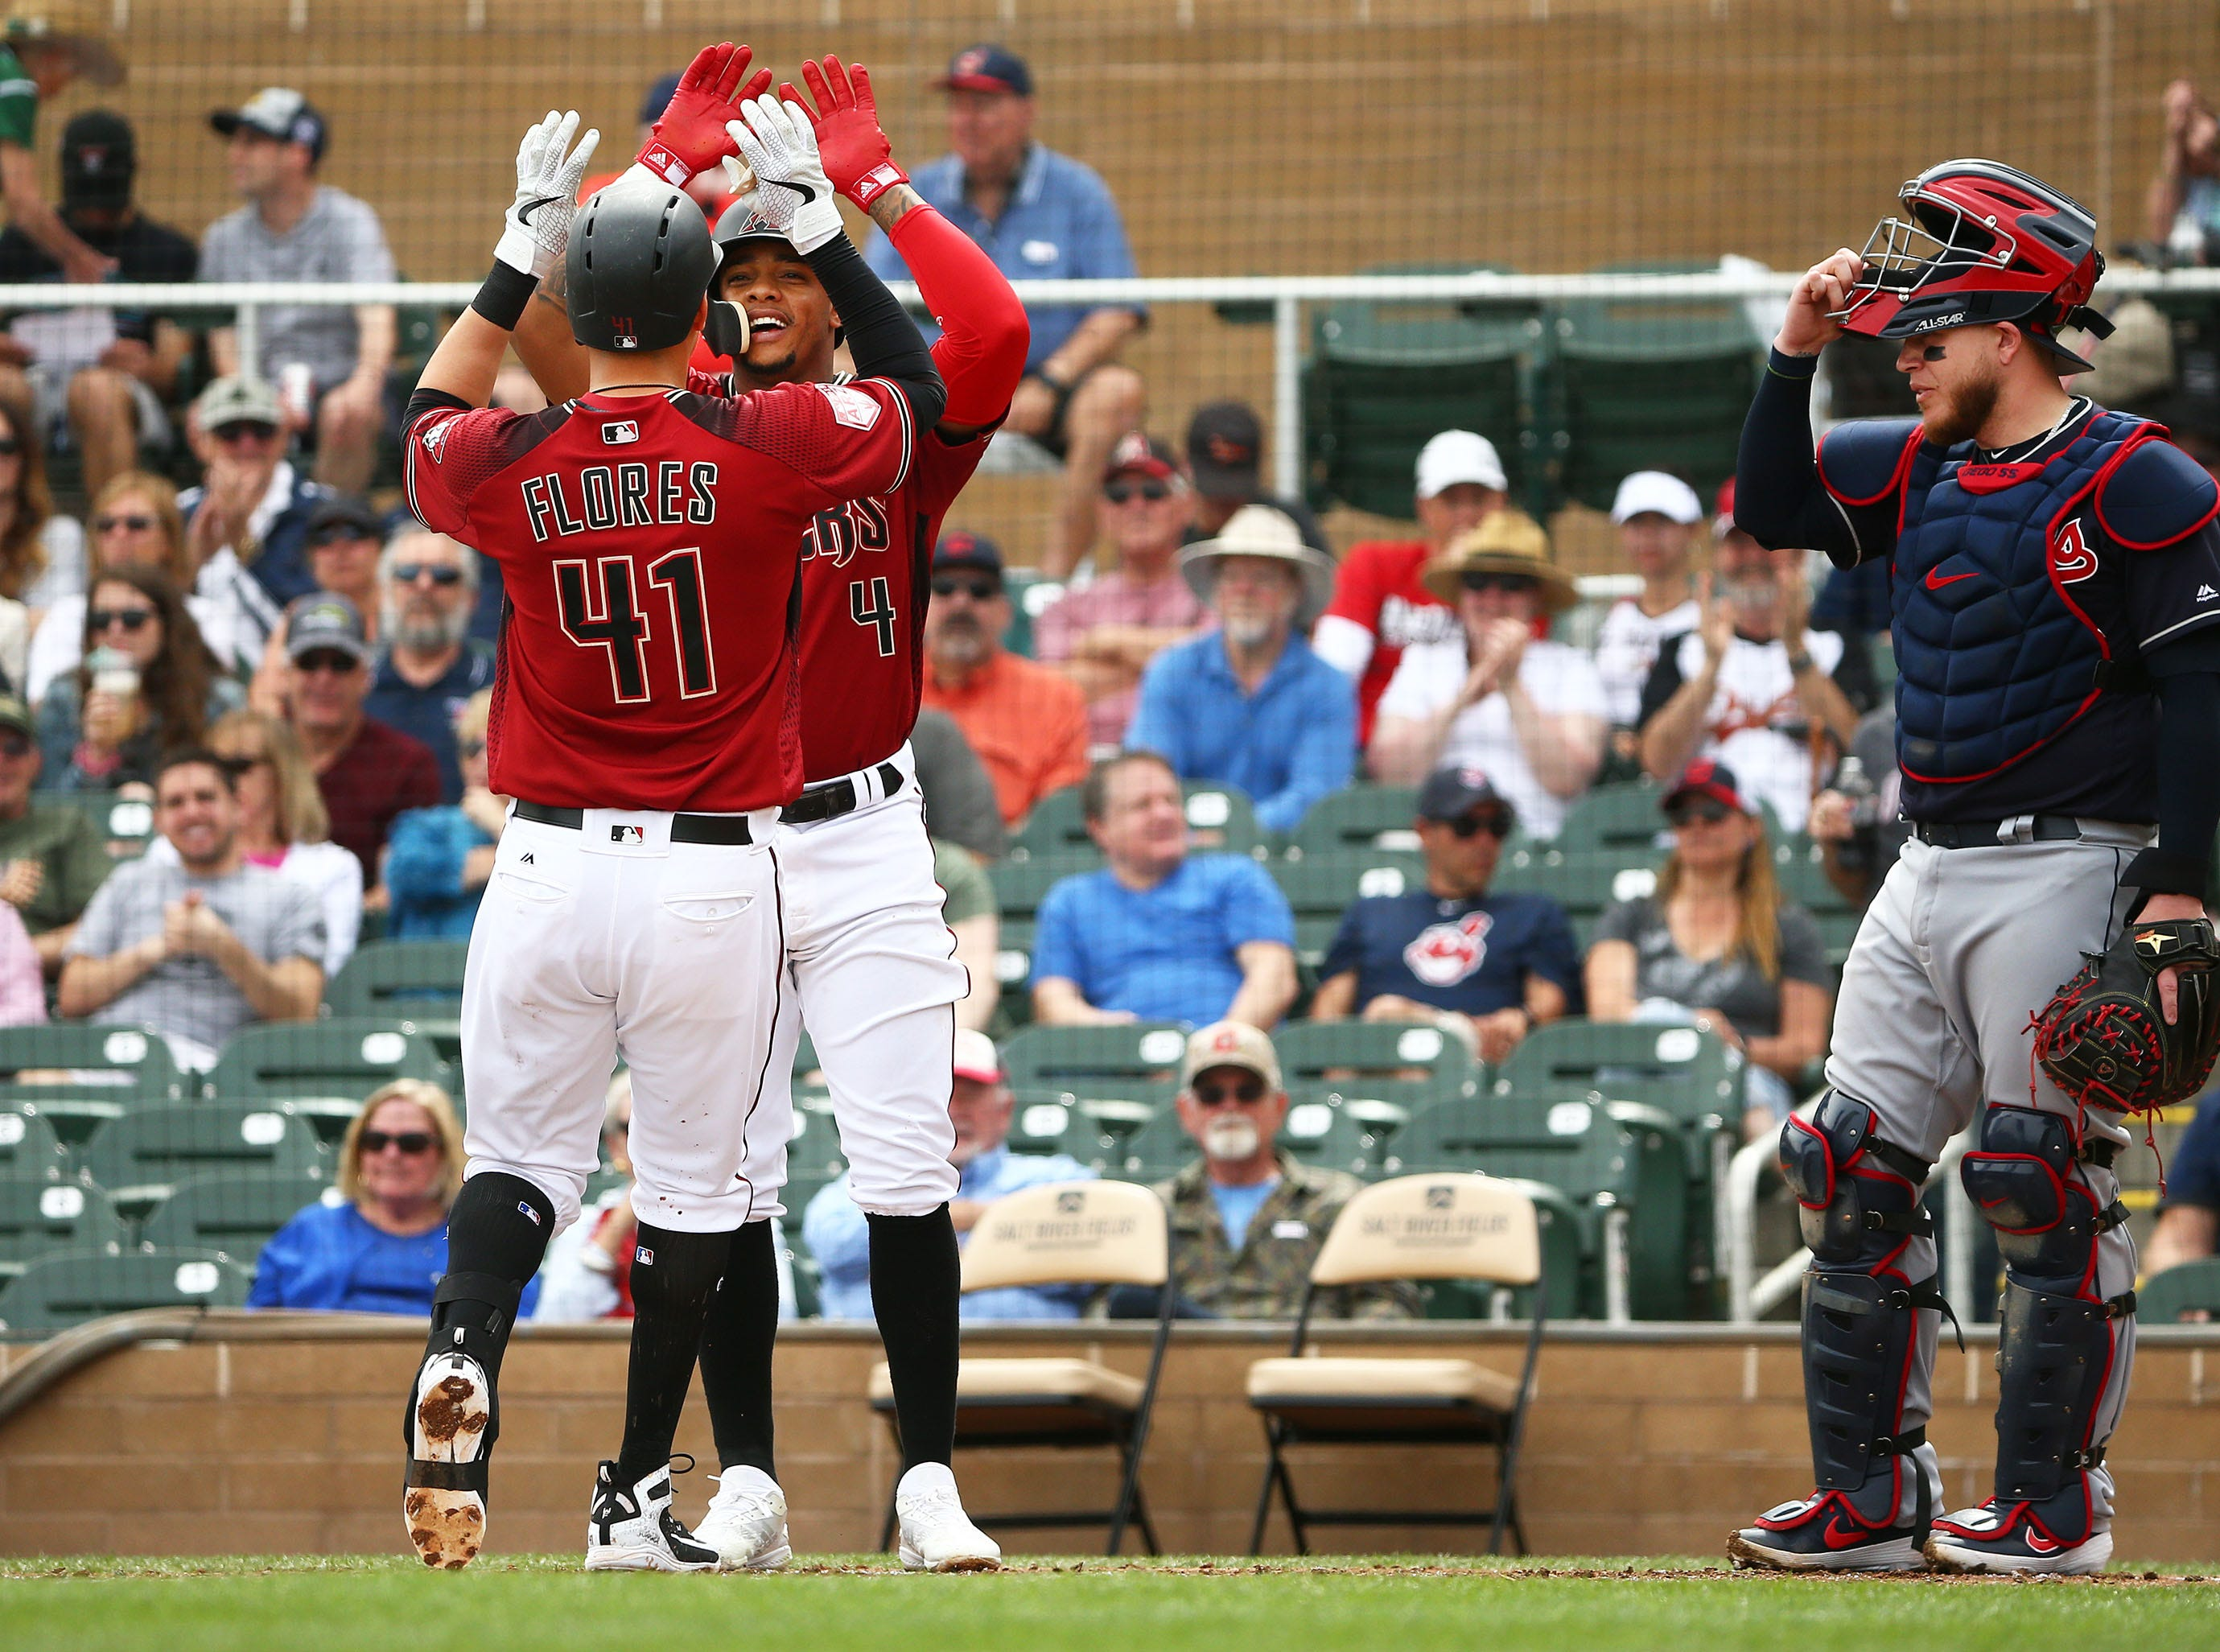 Arizona Diamondbacks Wilmer Flores (41) high-fives Ketel Marte after hitting a two-run home run against the Cleveland Indians in the 1st inning during a spring training game on Mar. 7, 2019 at Salt River Fields in Scottsdale, Ariz.